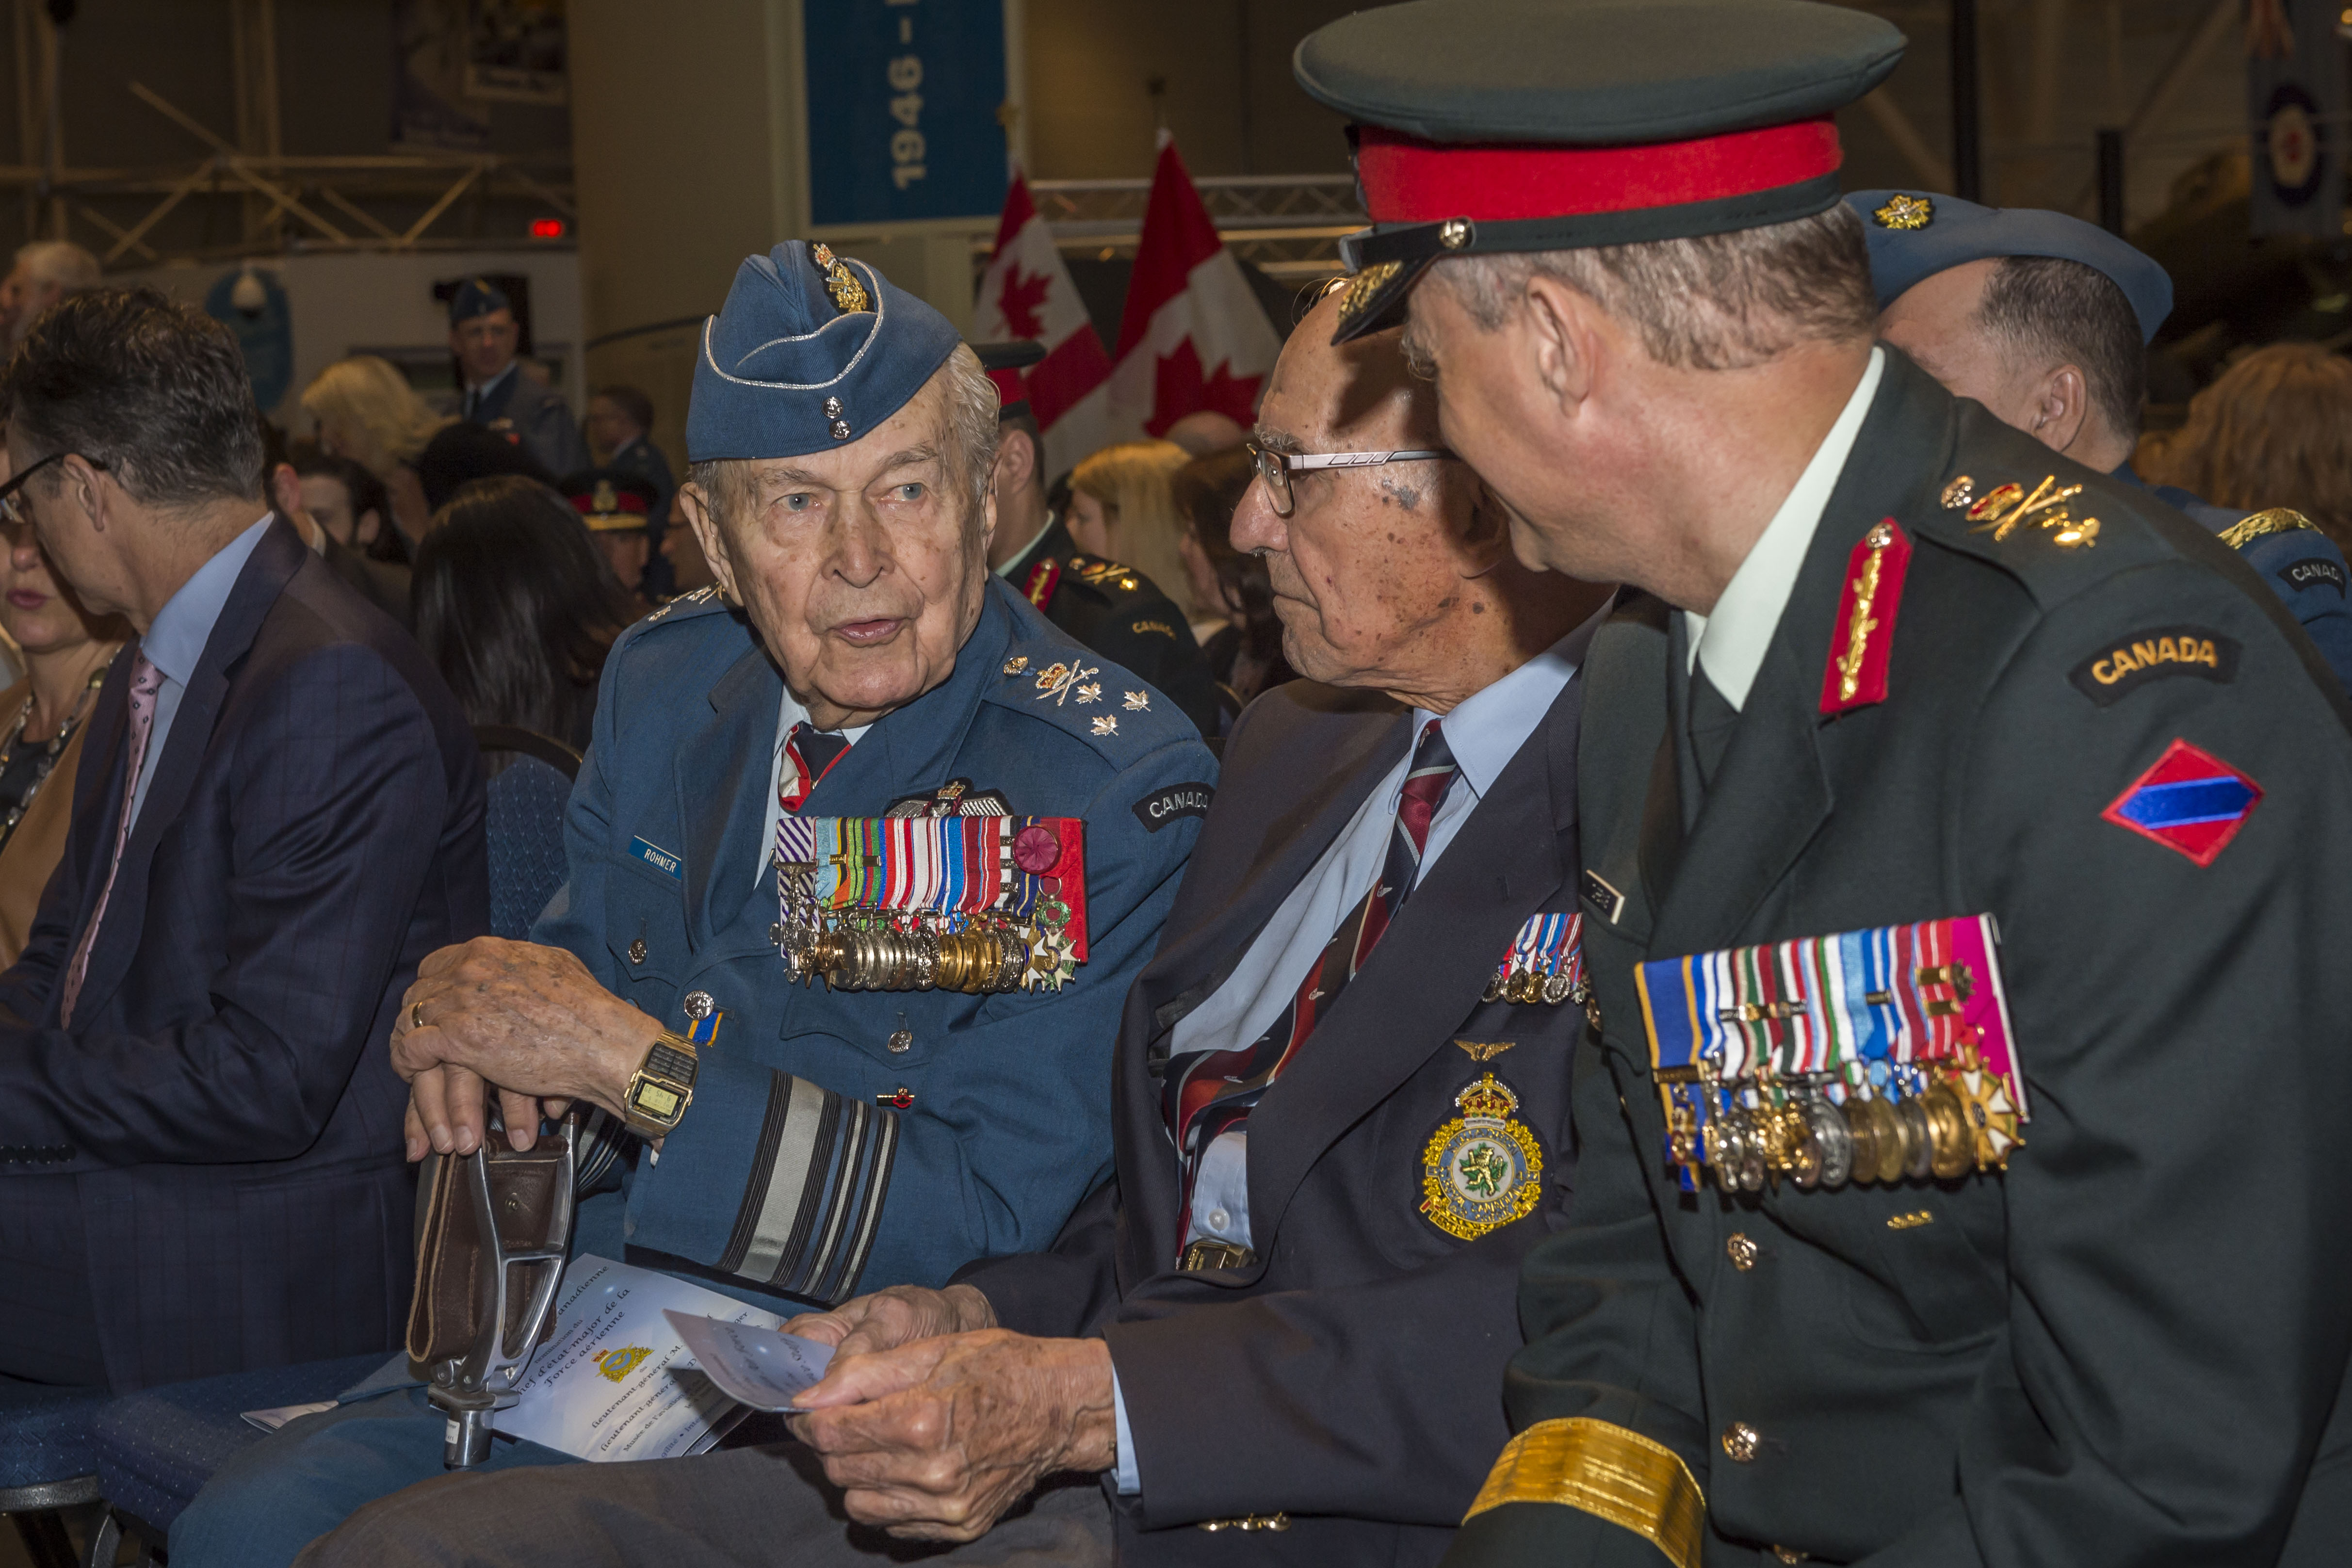 From left, Honorary Lieutenant-General Richard Rohmer, honorary advisor to the chief of the defence staff and a Second World War veteran; Mr. Stuart Vallières, a Second World War veteran of Bomber Command and special guest of Lieutenant-General Meinzinger, and Major-General Carl Turenne, deputy commander of the Canadian Army, chat before the Change of Command ceremony. PHOTO: Corporal Alana Morin, FA03-2018-0040-014